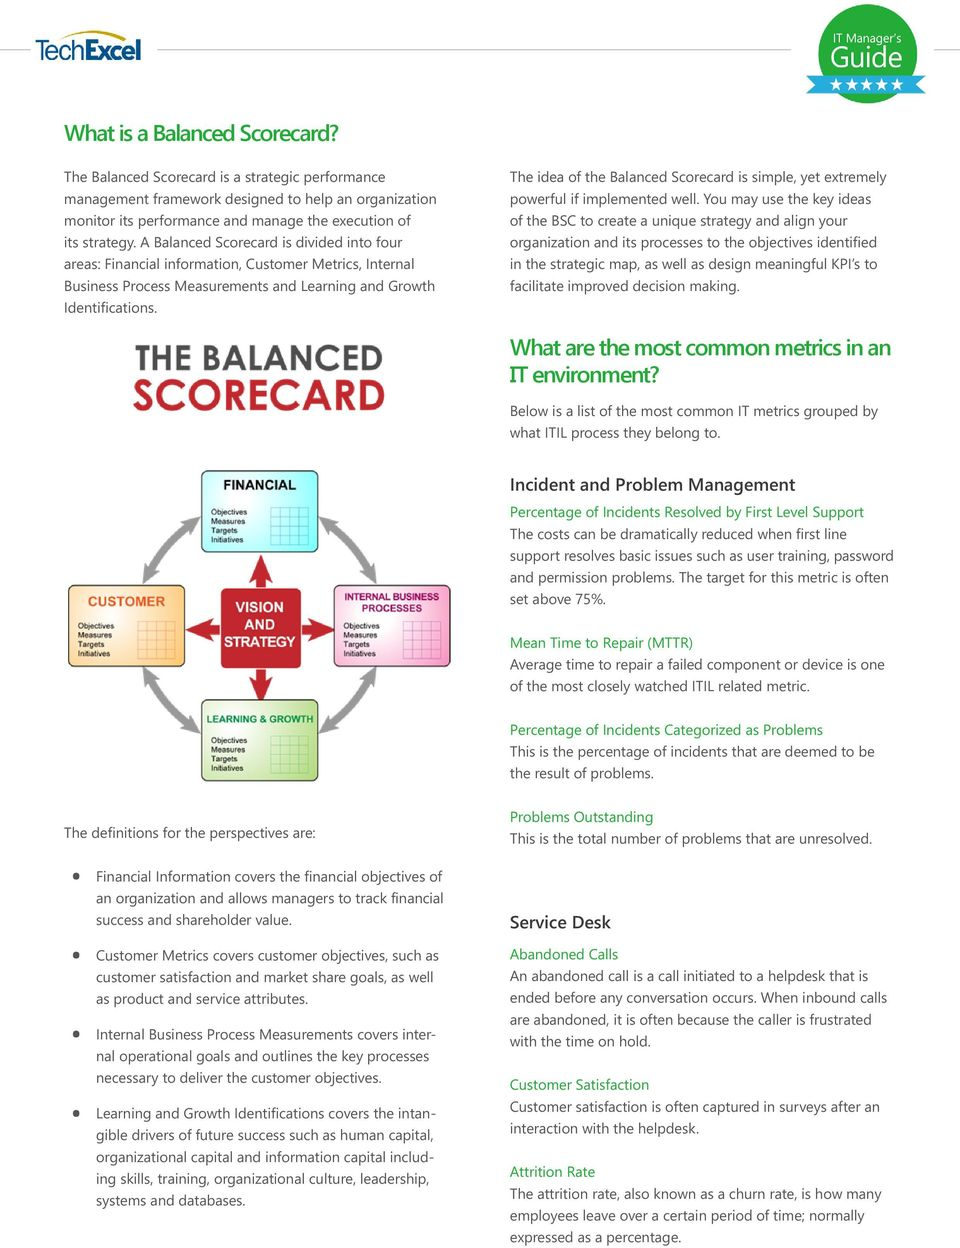 The idea of the Balanced Scorecard is simple, yet extremely powerful if implemented well.